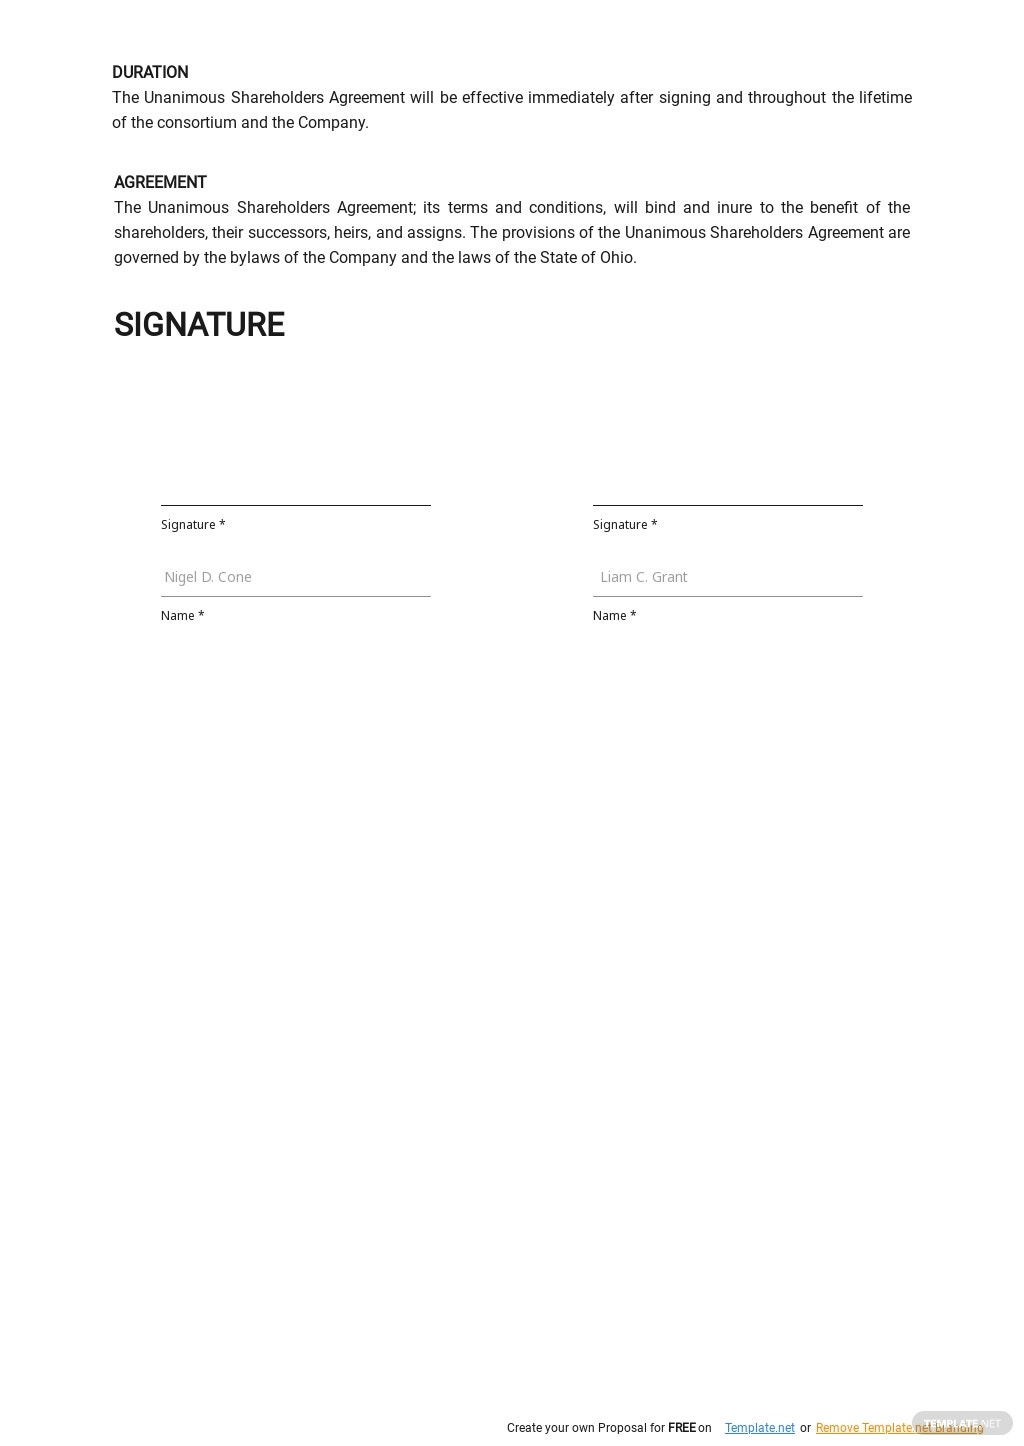 Adhesion to the Unanimous Shareholder Agreement Template 2.jpe